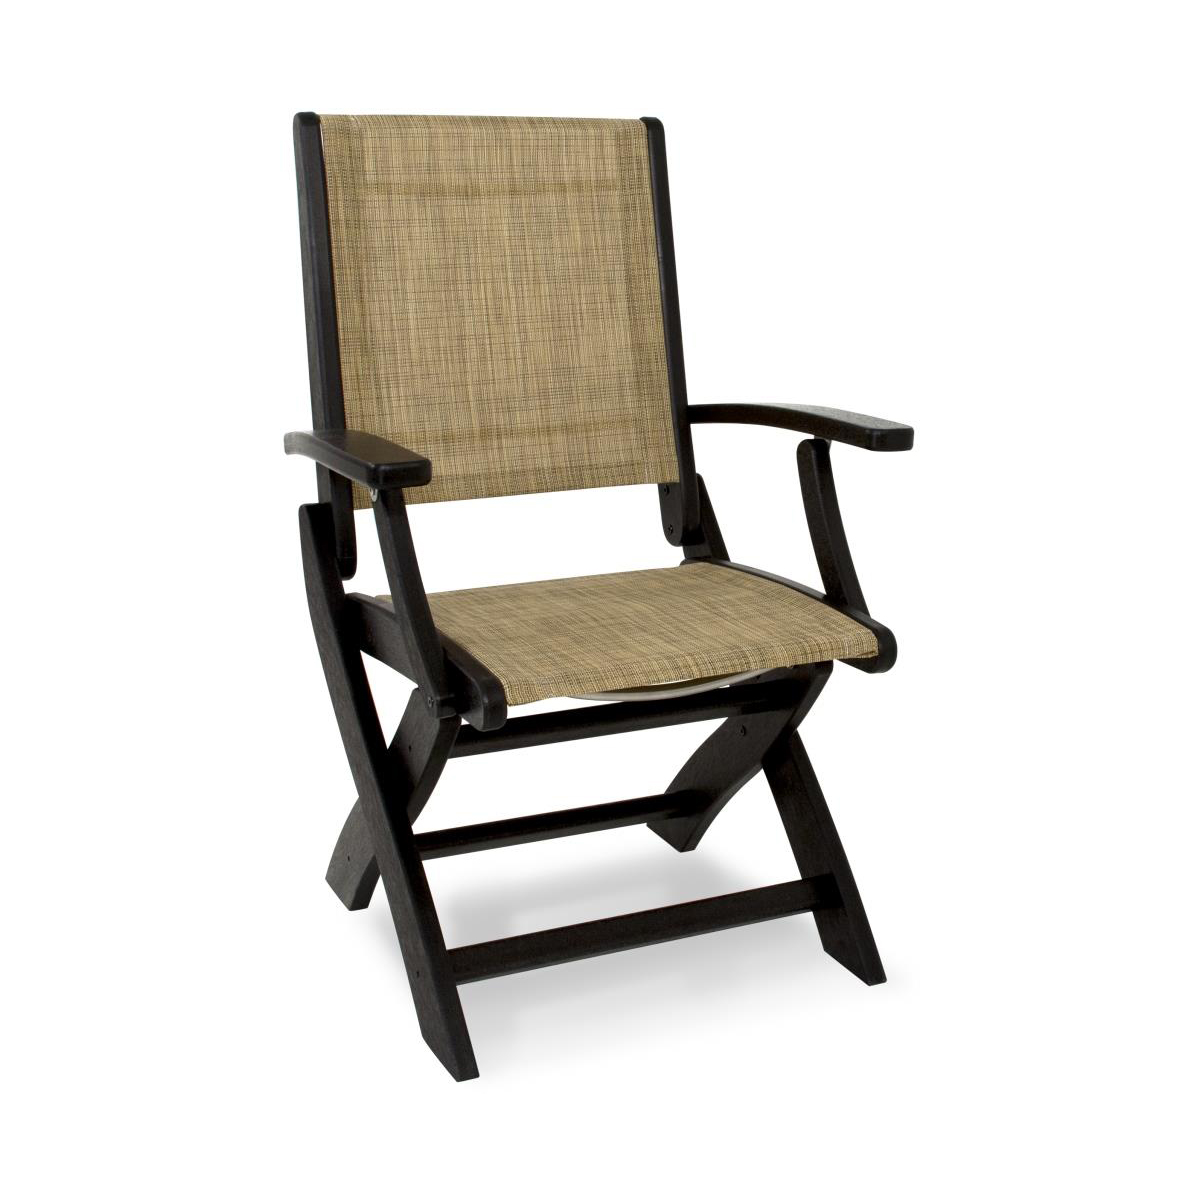 polywood coastal folding dining chair. Black Bedroom Furniture Sets. Home Design Ideas